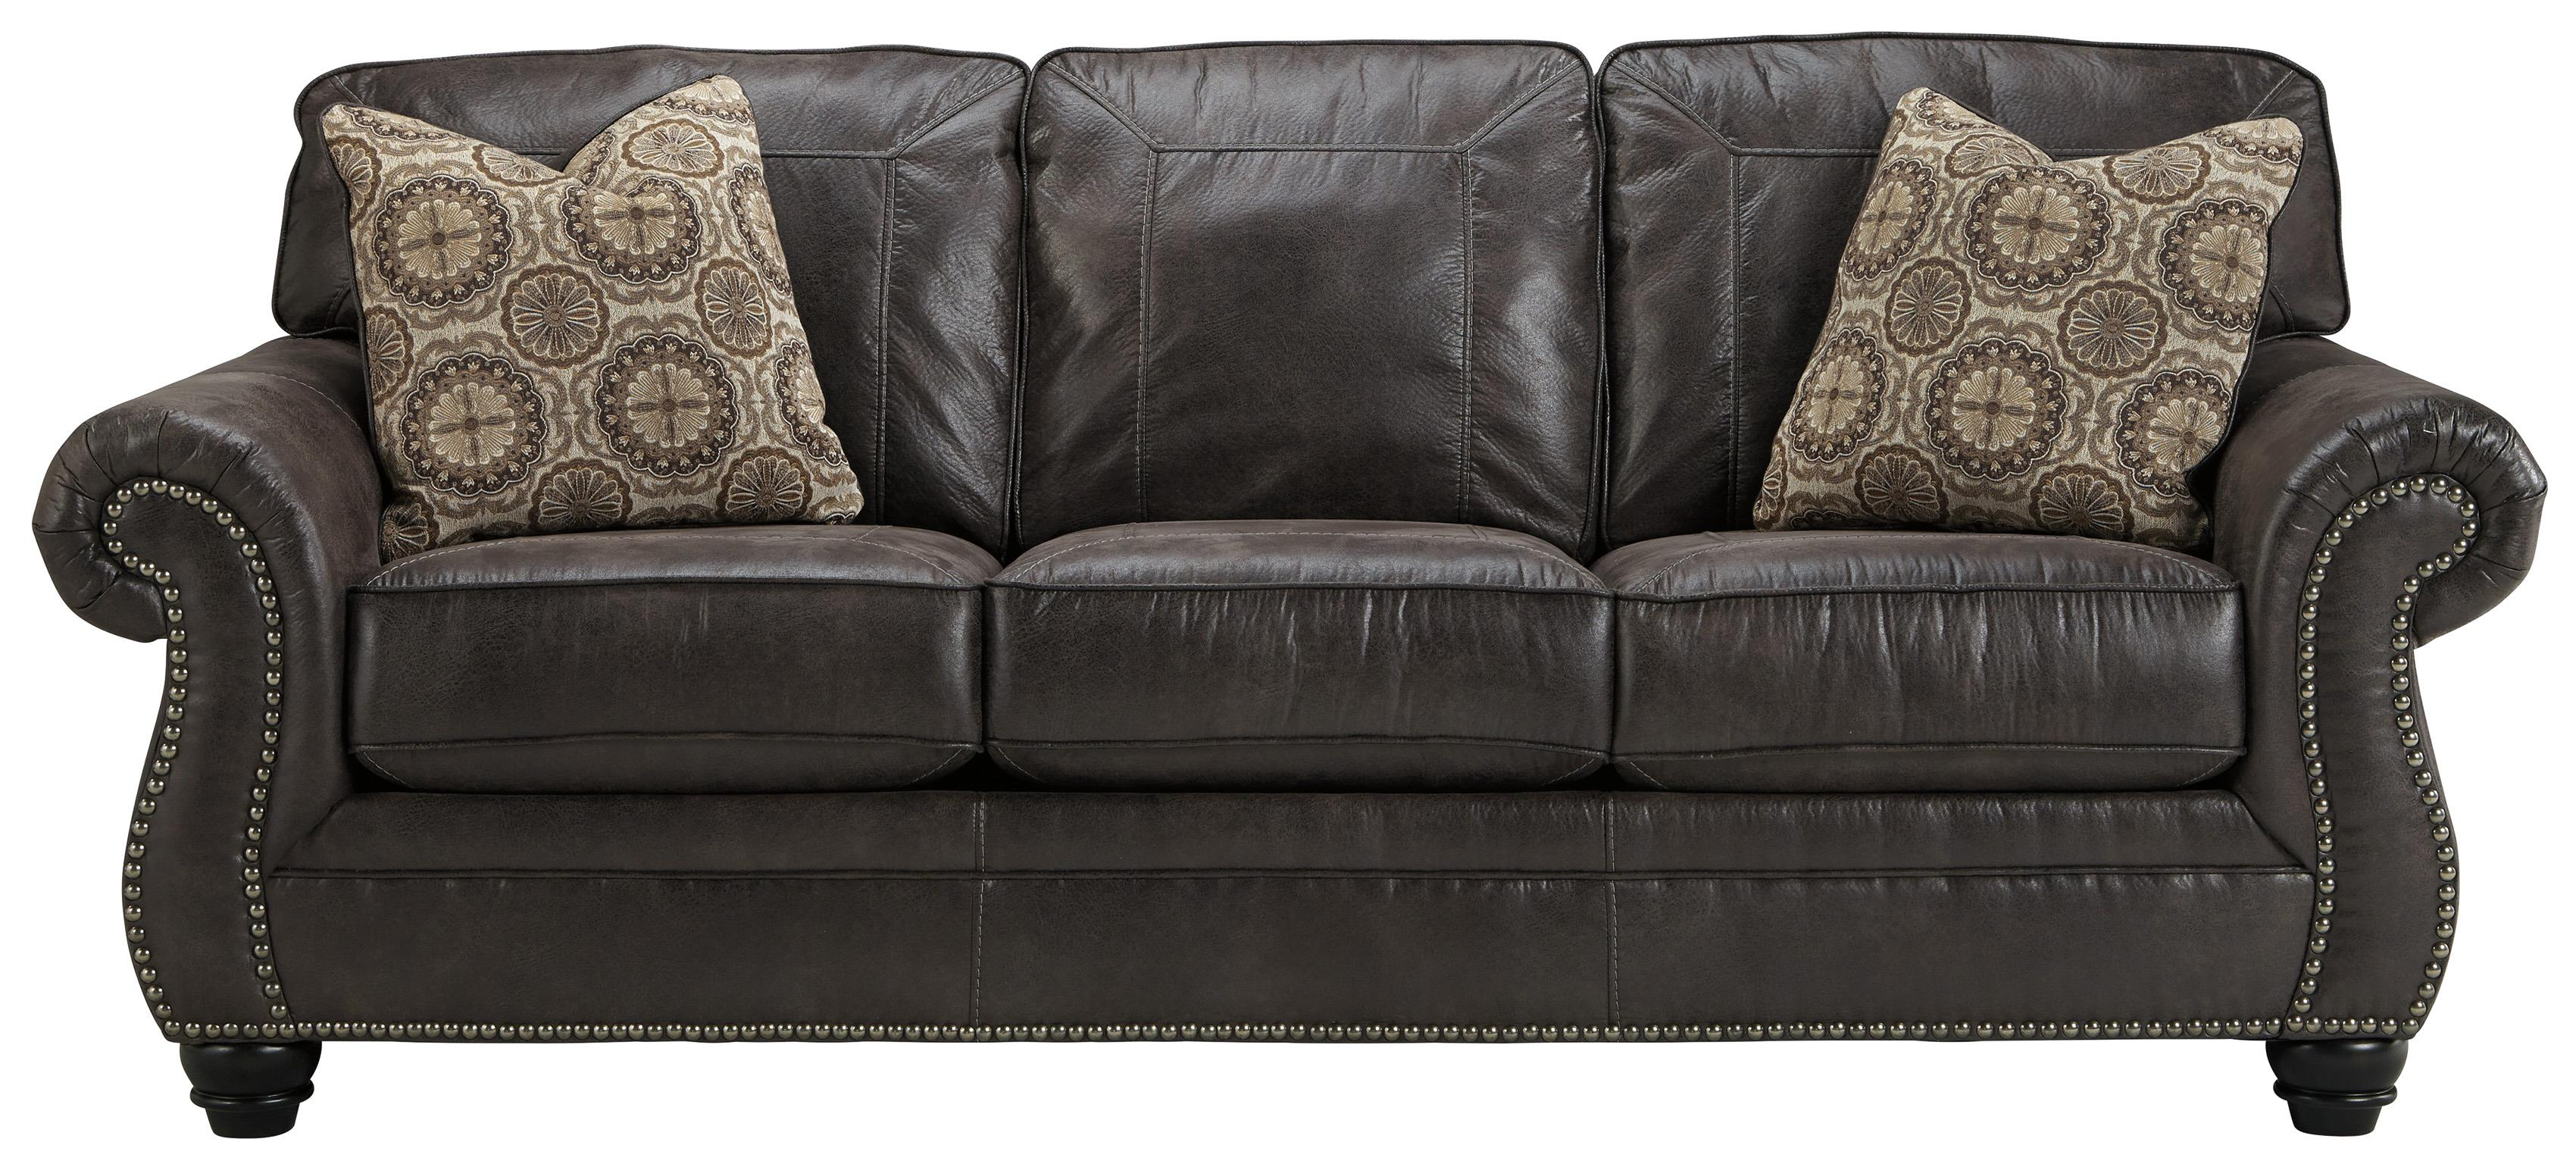 leather sectional sleeper sofa queen corner that turns into a bed benchcraft breville 8000439 faux